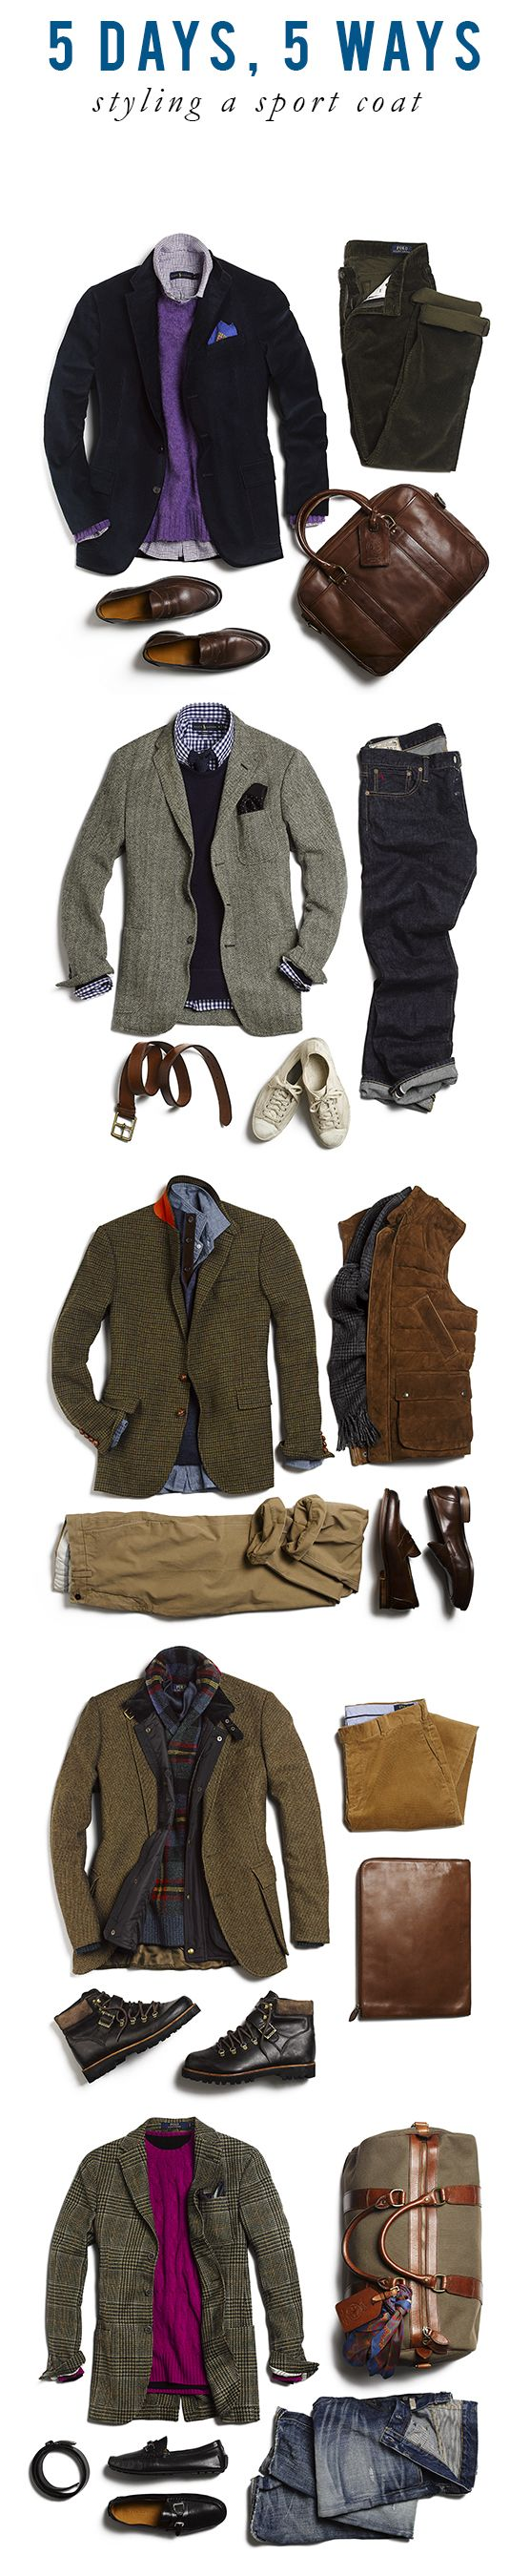 5 Days, 5 Ways: The Art of the Sport Coat | Style | Pinterest | Mens fashion, Fashion and Style